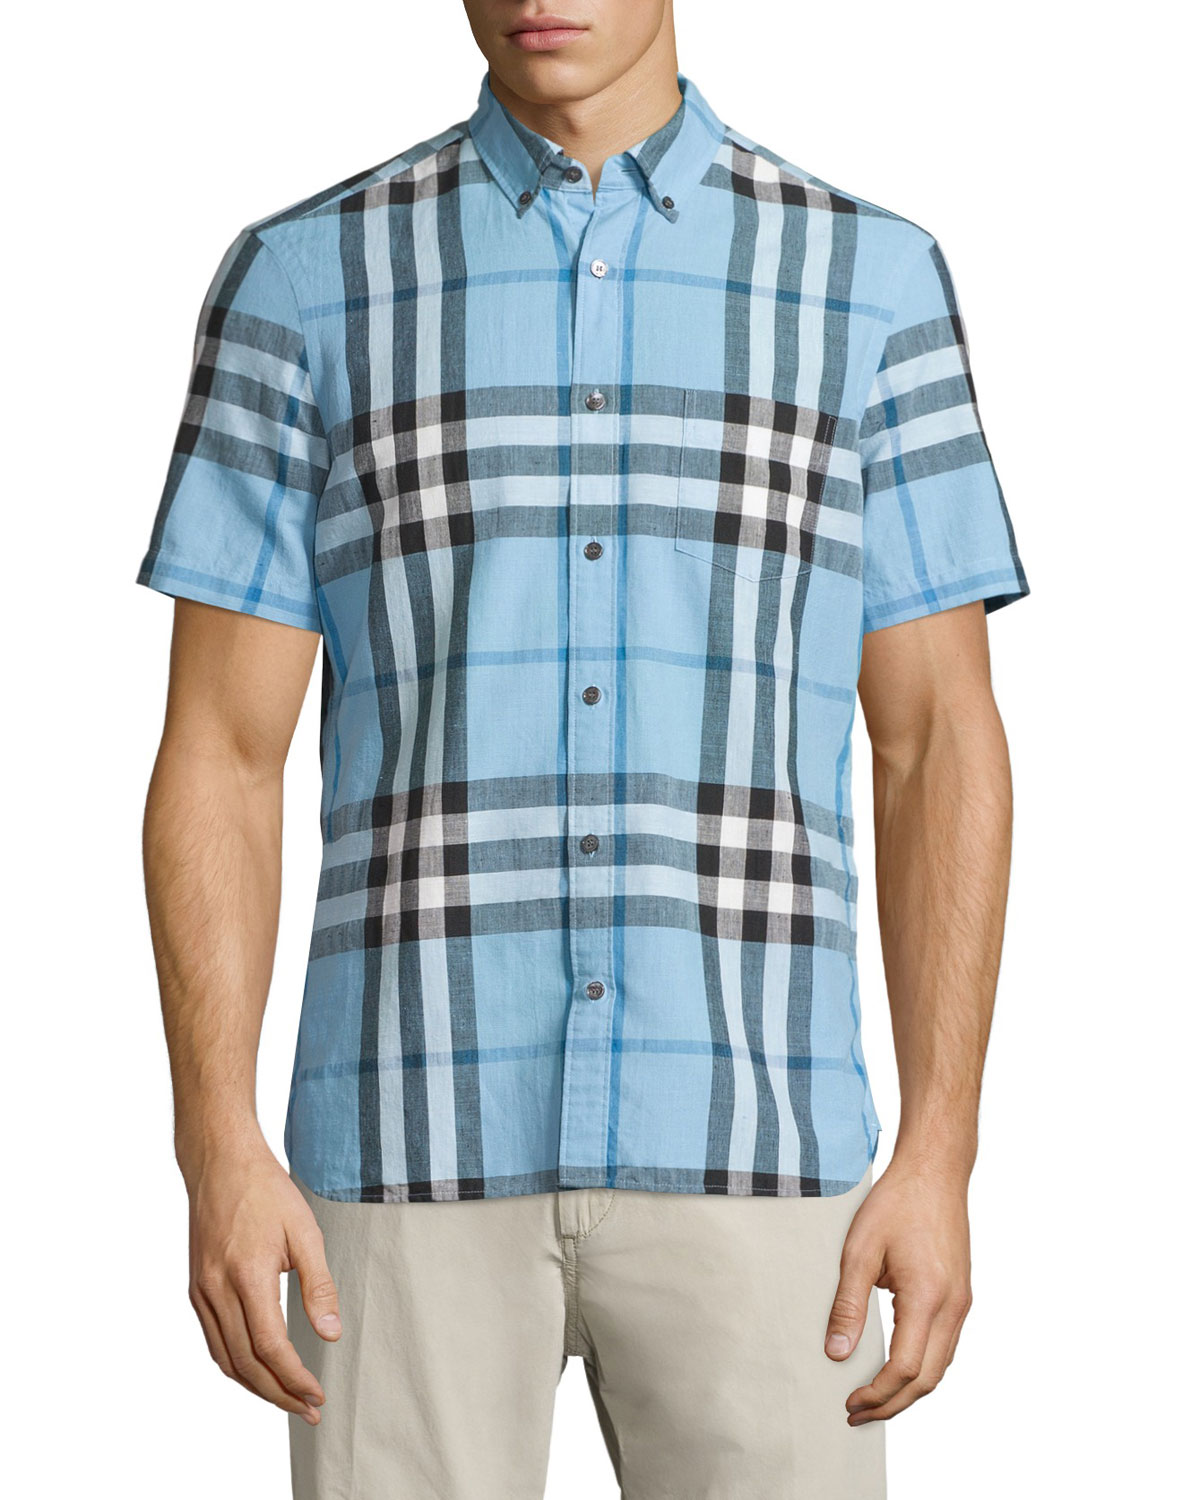 Linen-Blend Exploded Check Short-Sleeve Shirt, Pale Blue